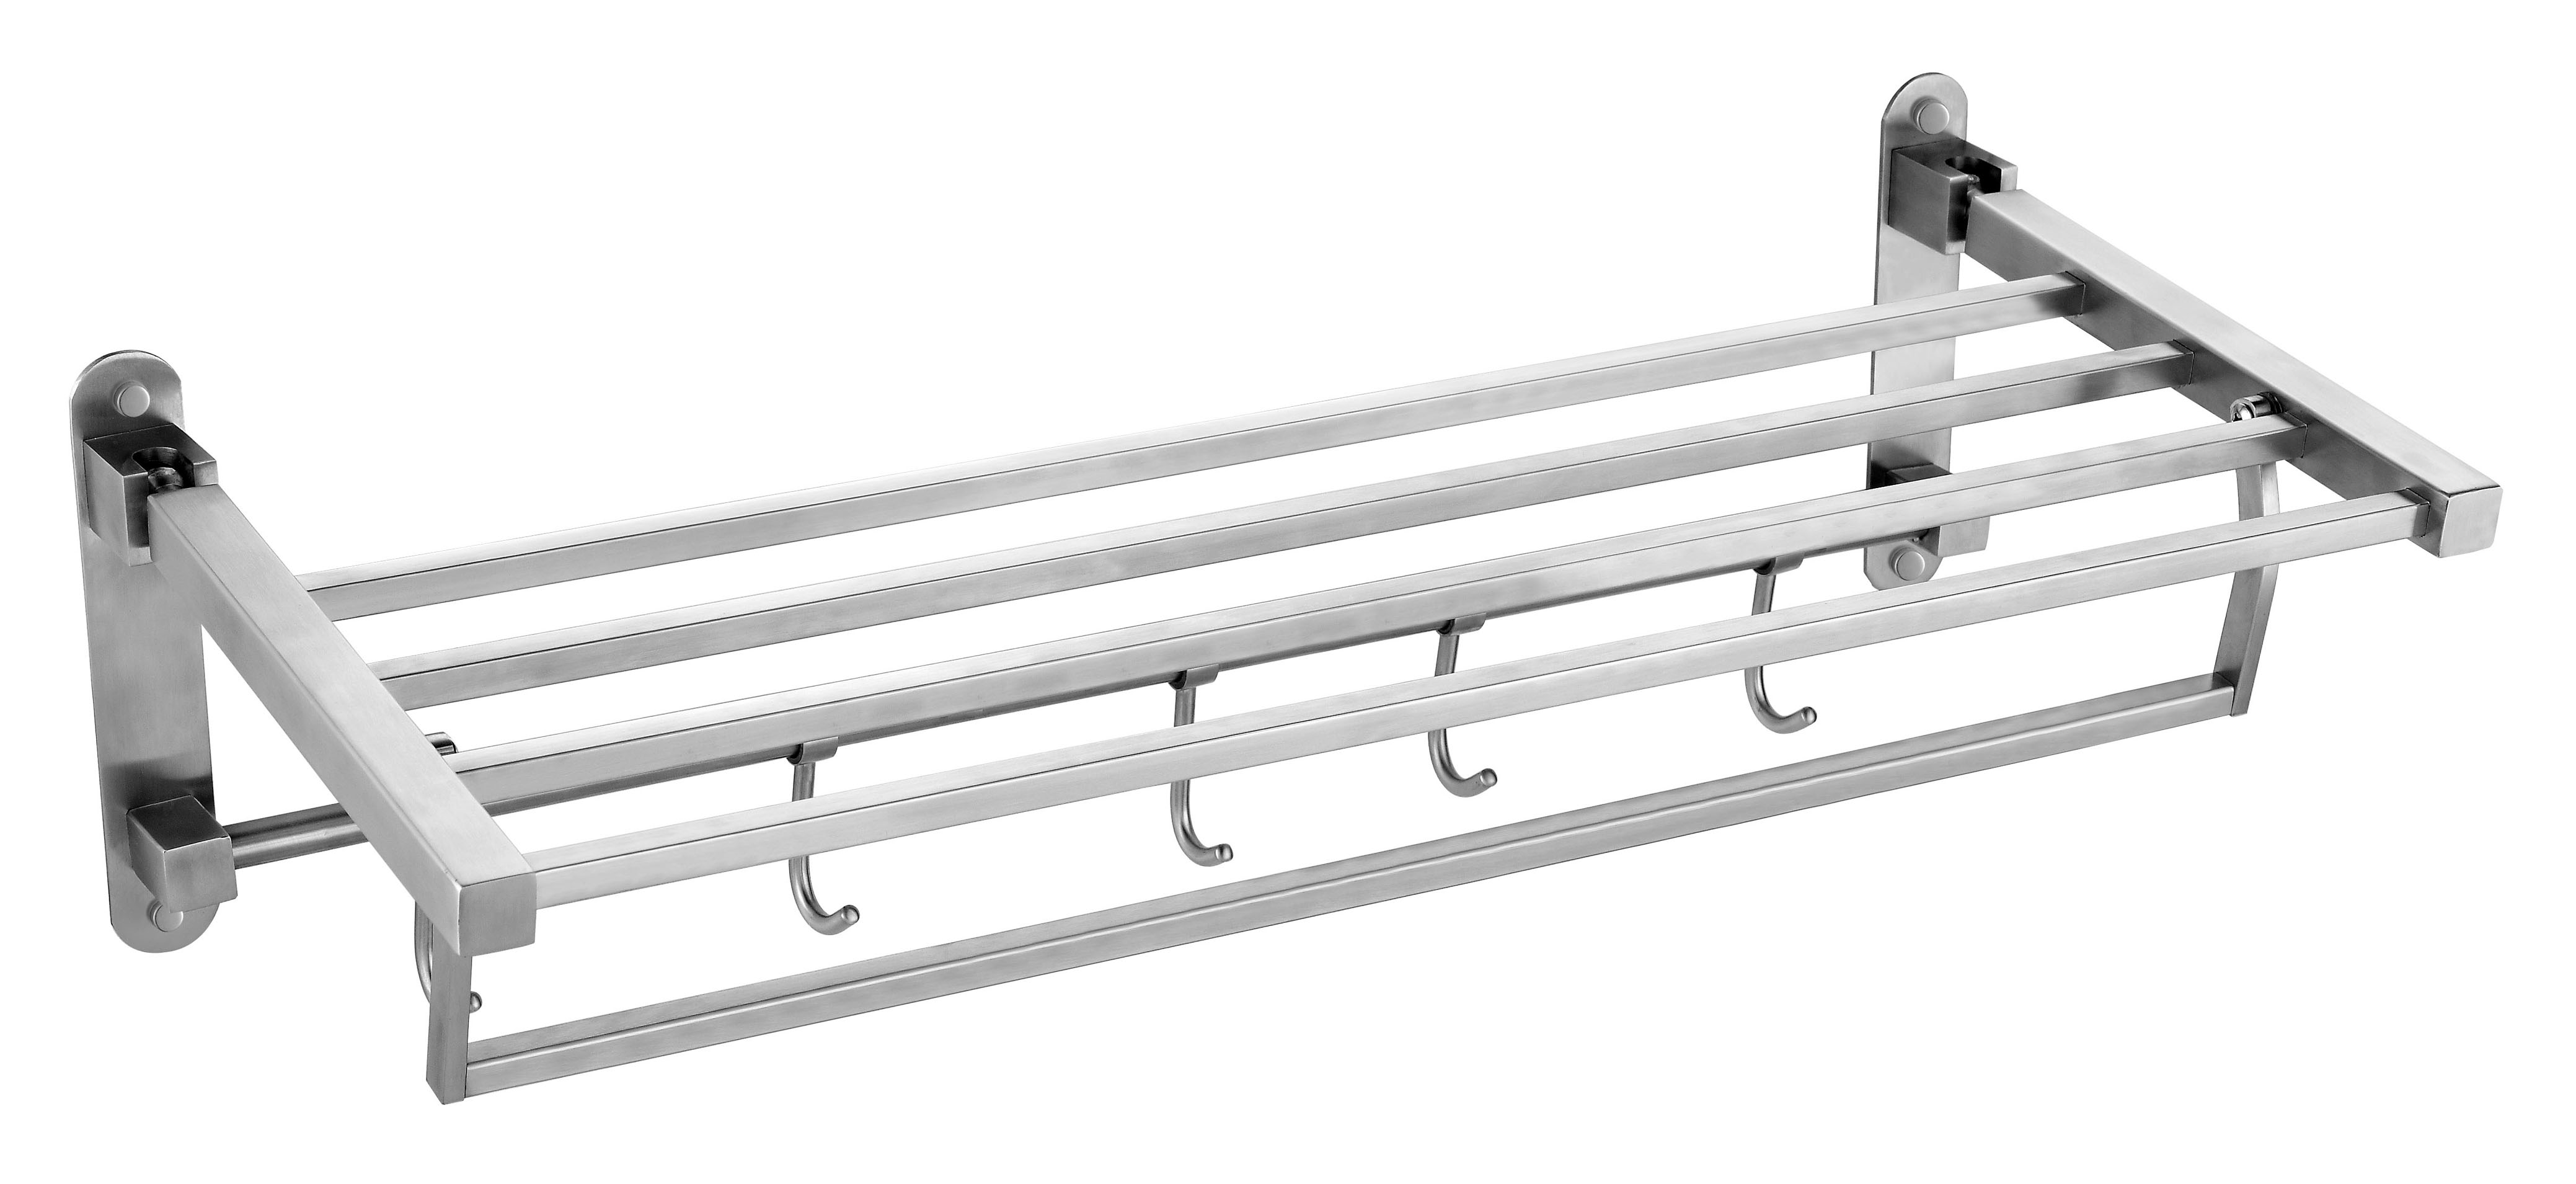 Wall mounted unique 304 SS double extension towel bars double towel shelf